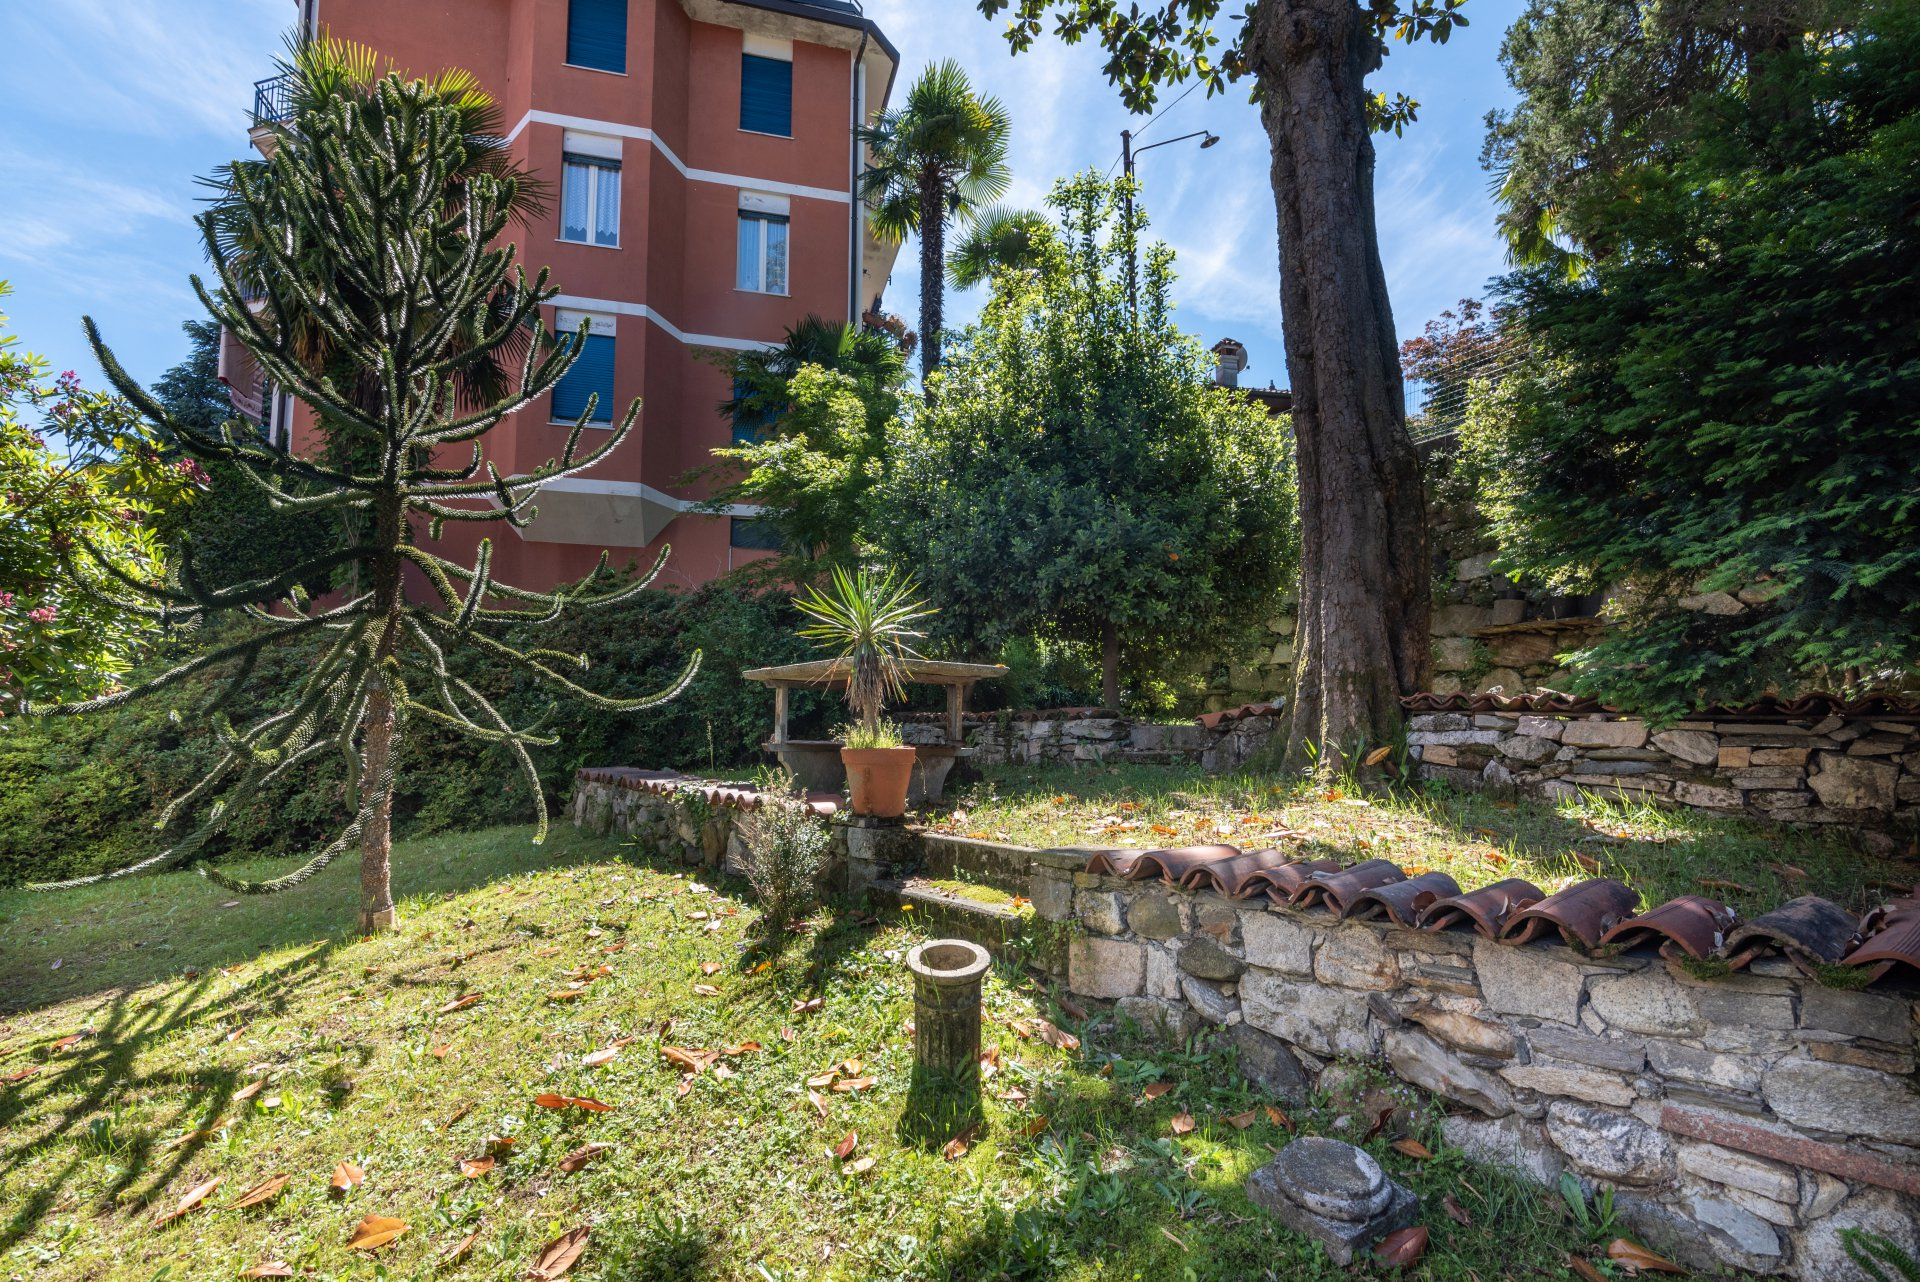 Property for sale in the centre of Stresa- side garden